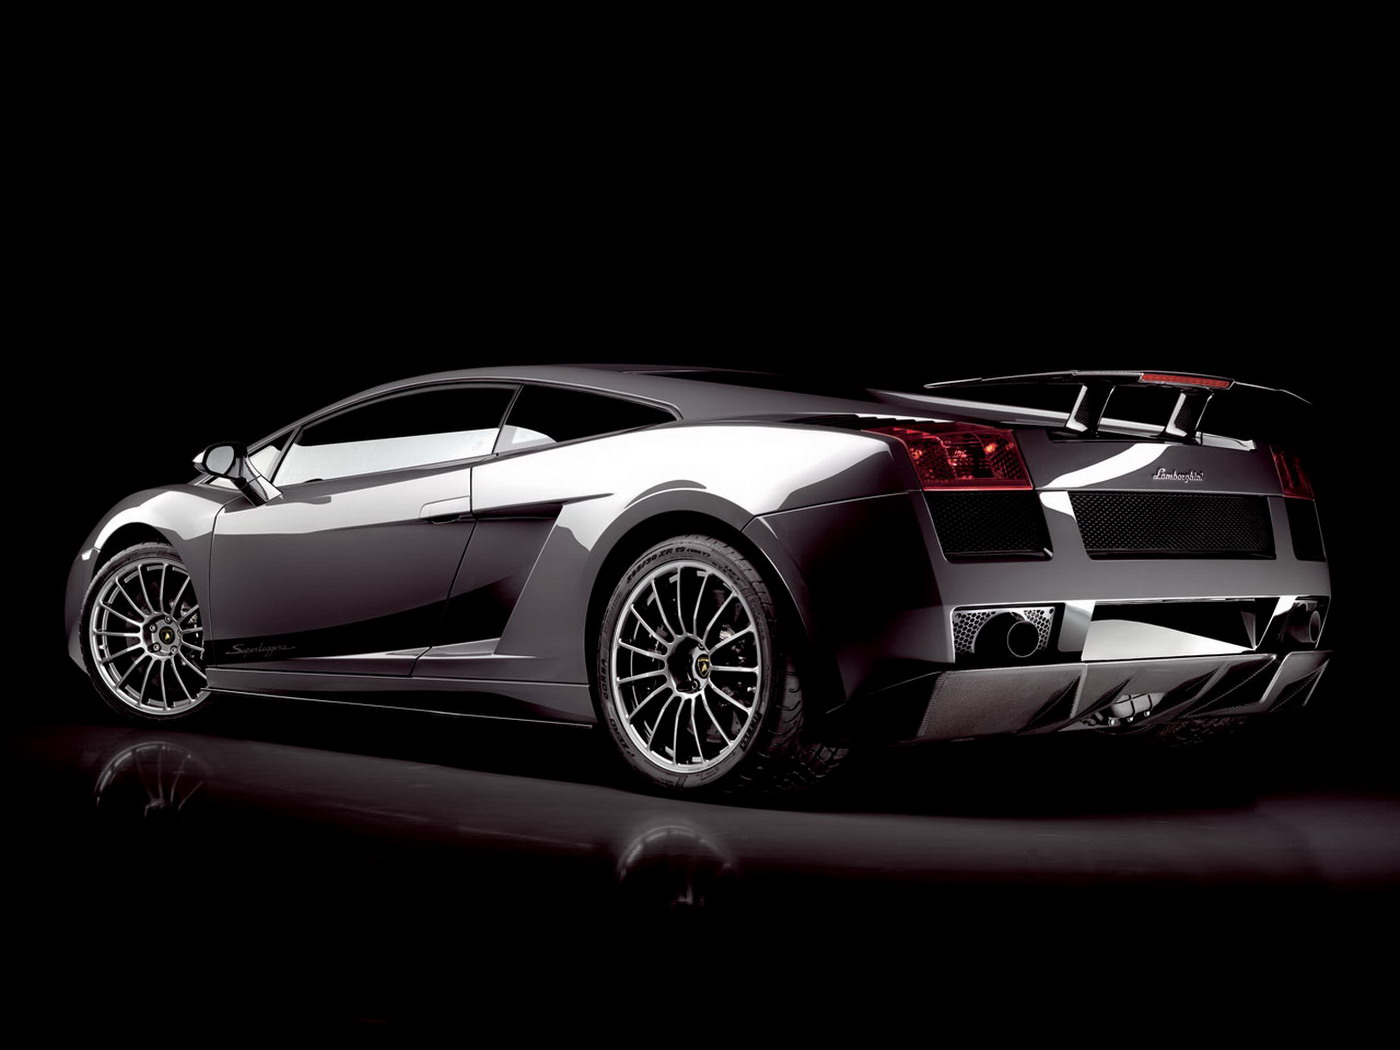 Fast Cars Under 30K >> Hd Cars Wallpapers | The Fast Cars